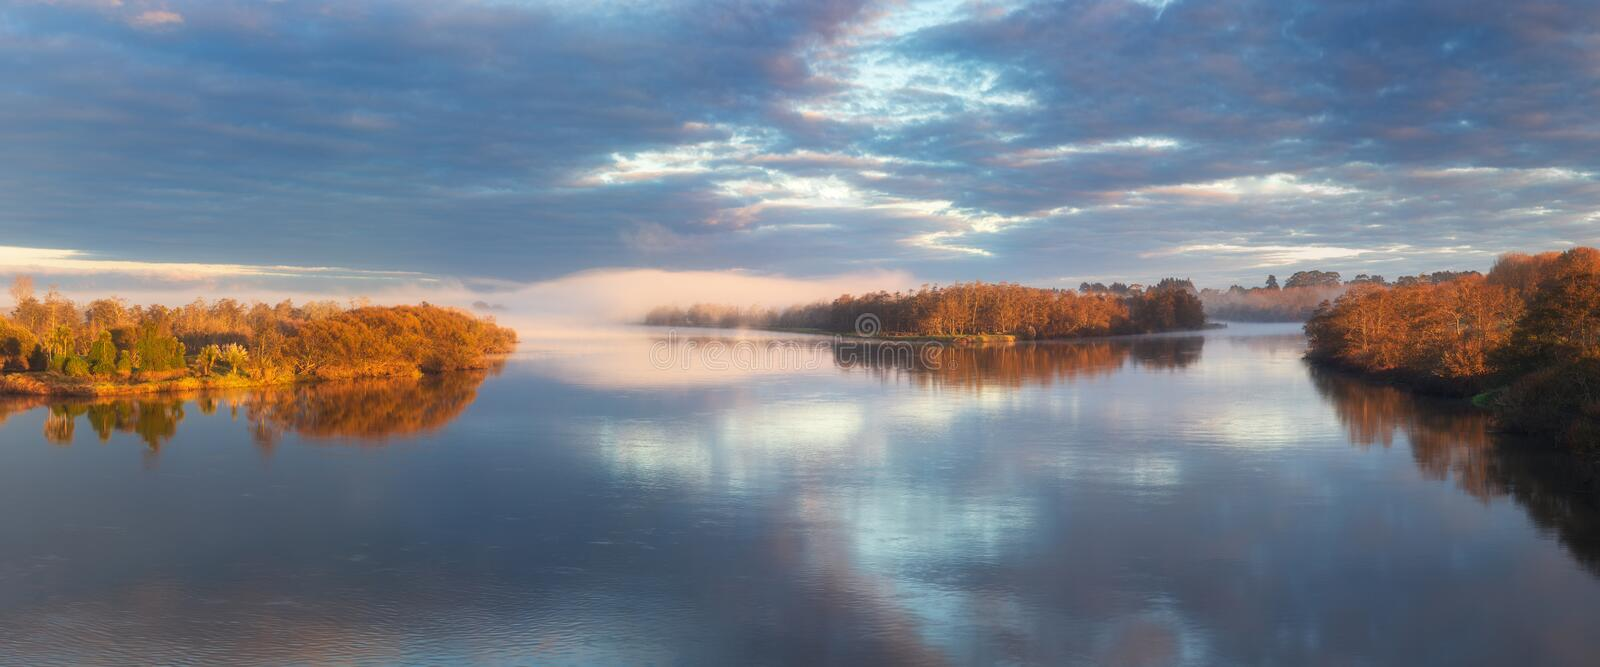 Dawn in a fog on the river. Autumn morning. A fog over water. The sun in a fog. Early morning sunrise glow and rising mist. stock photos